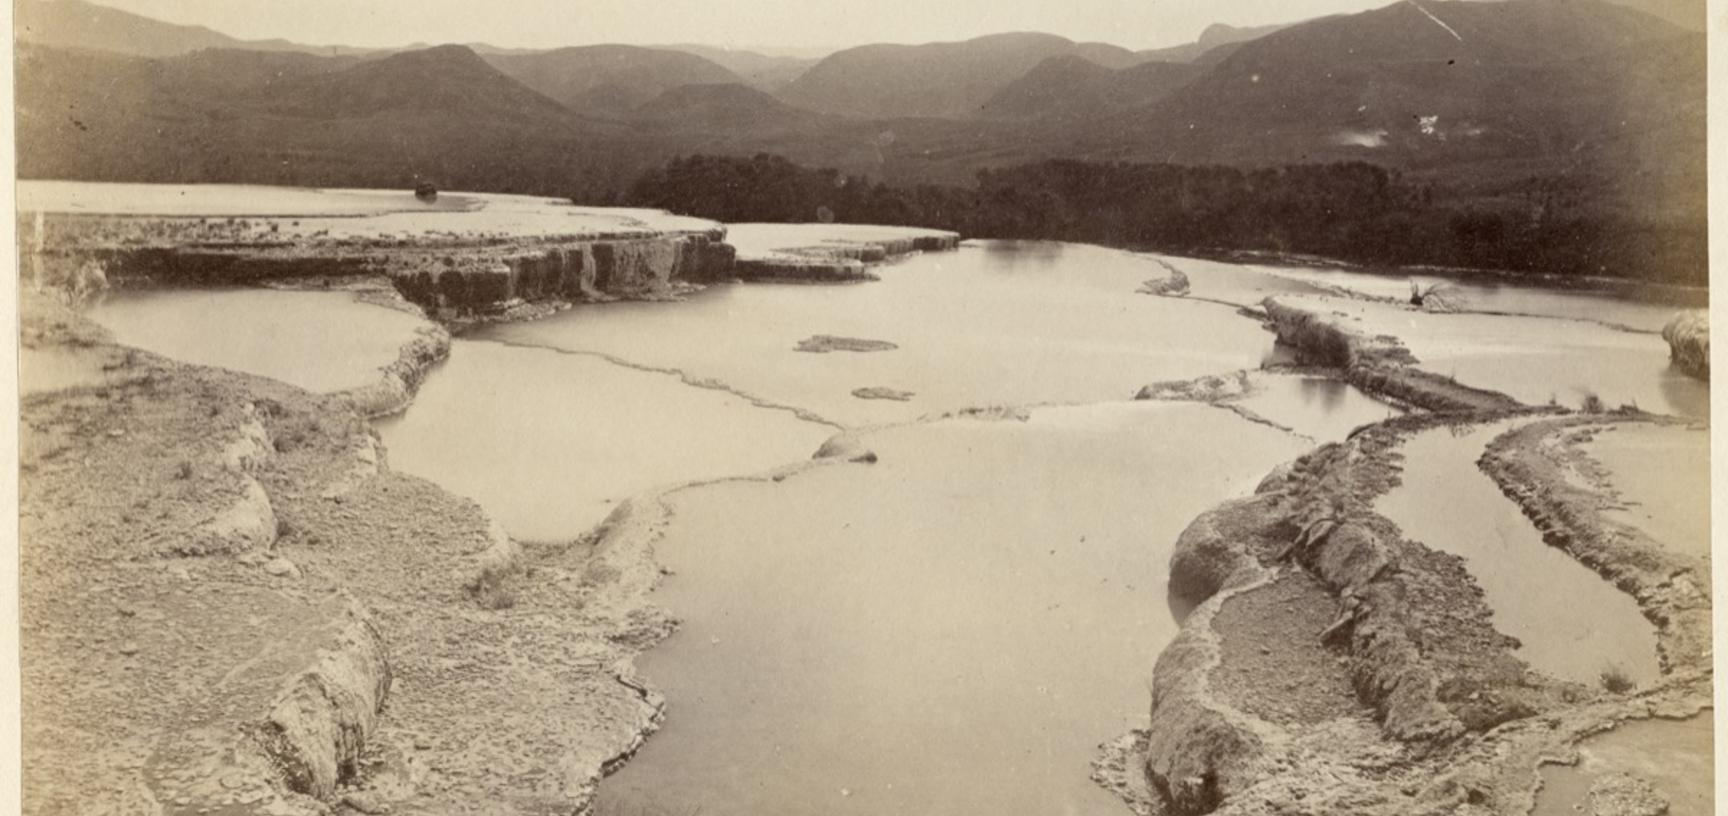 View of the geological structure known as the 'White Terraces', near Rotorua. Photograph by Alfred Burton for the Burton Brothers studio (Dunedin). Lake Rotomahana, North Island, New Zealand. Circa 1884.